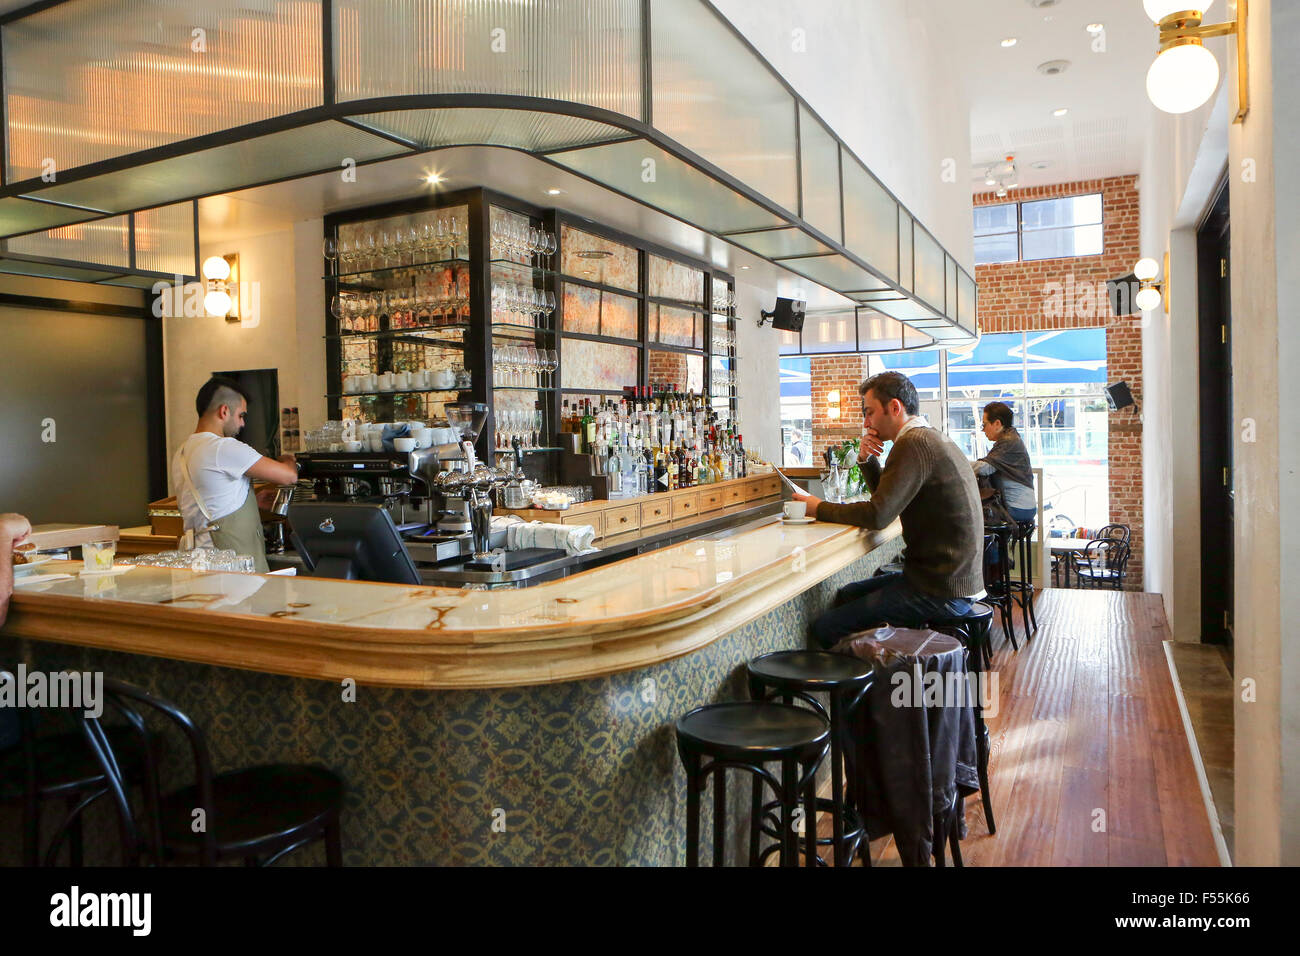 Interior of a cafe in Rothschild Boulevard, Tel Aviv, Israel - Stock Image